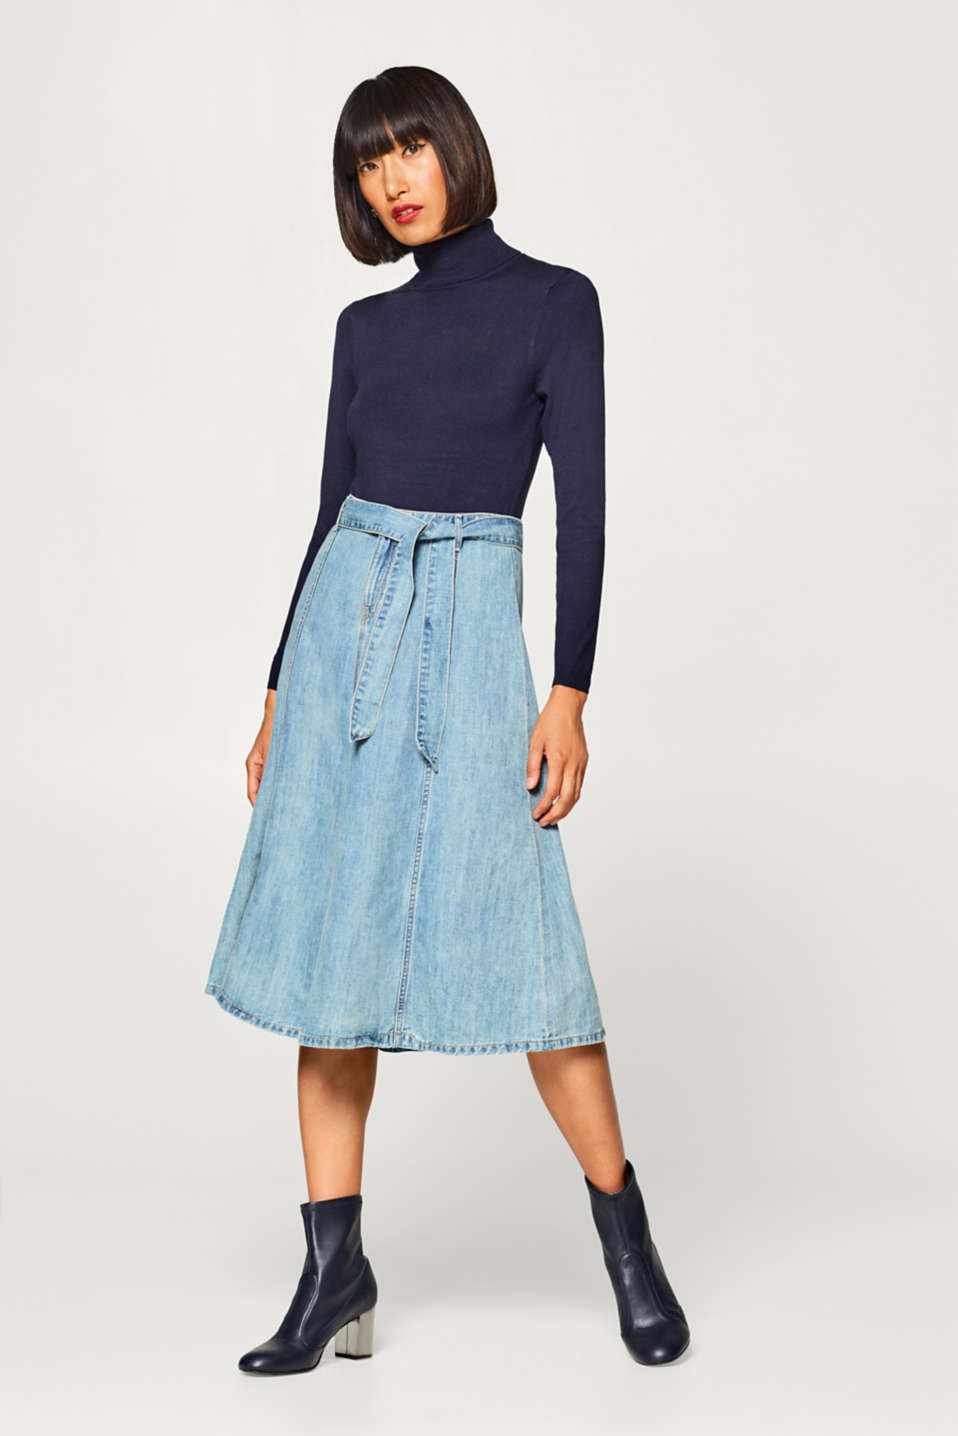 Esprit - With linen: Swirling denim skirt in an A-line